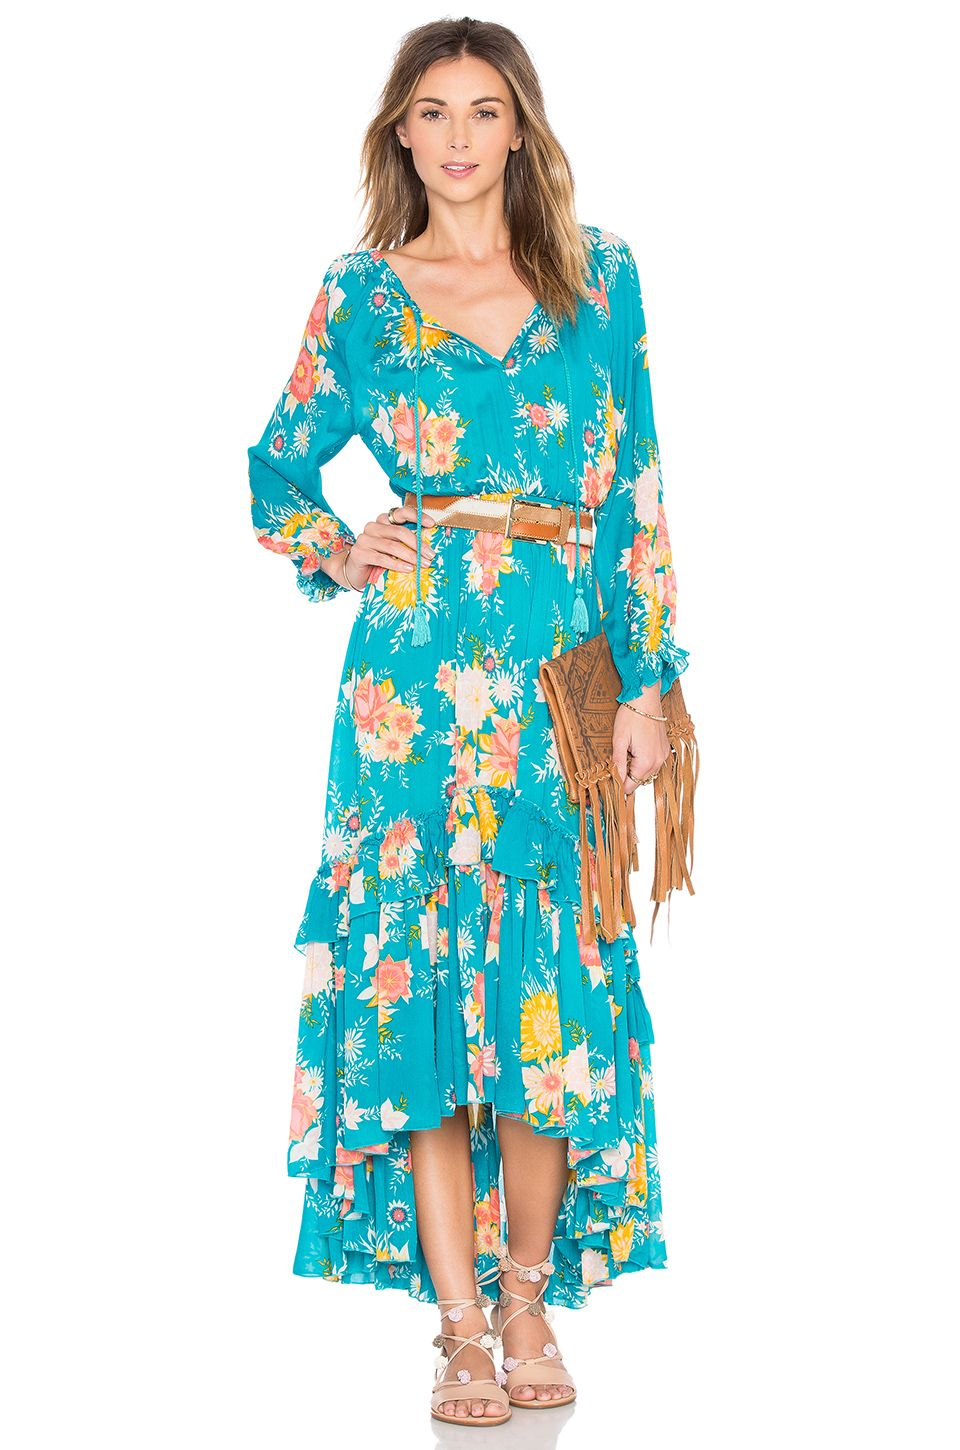 Spell & The Gypsy Collective Jagger Dress in Teal | Outfit Envy ...